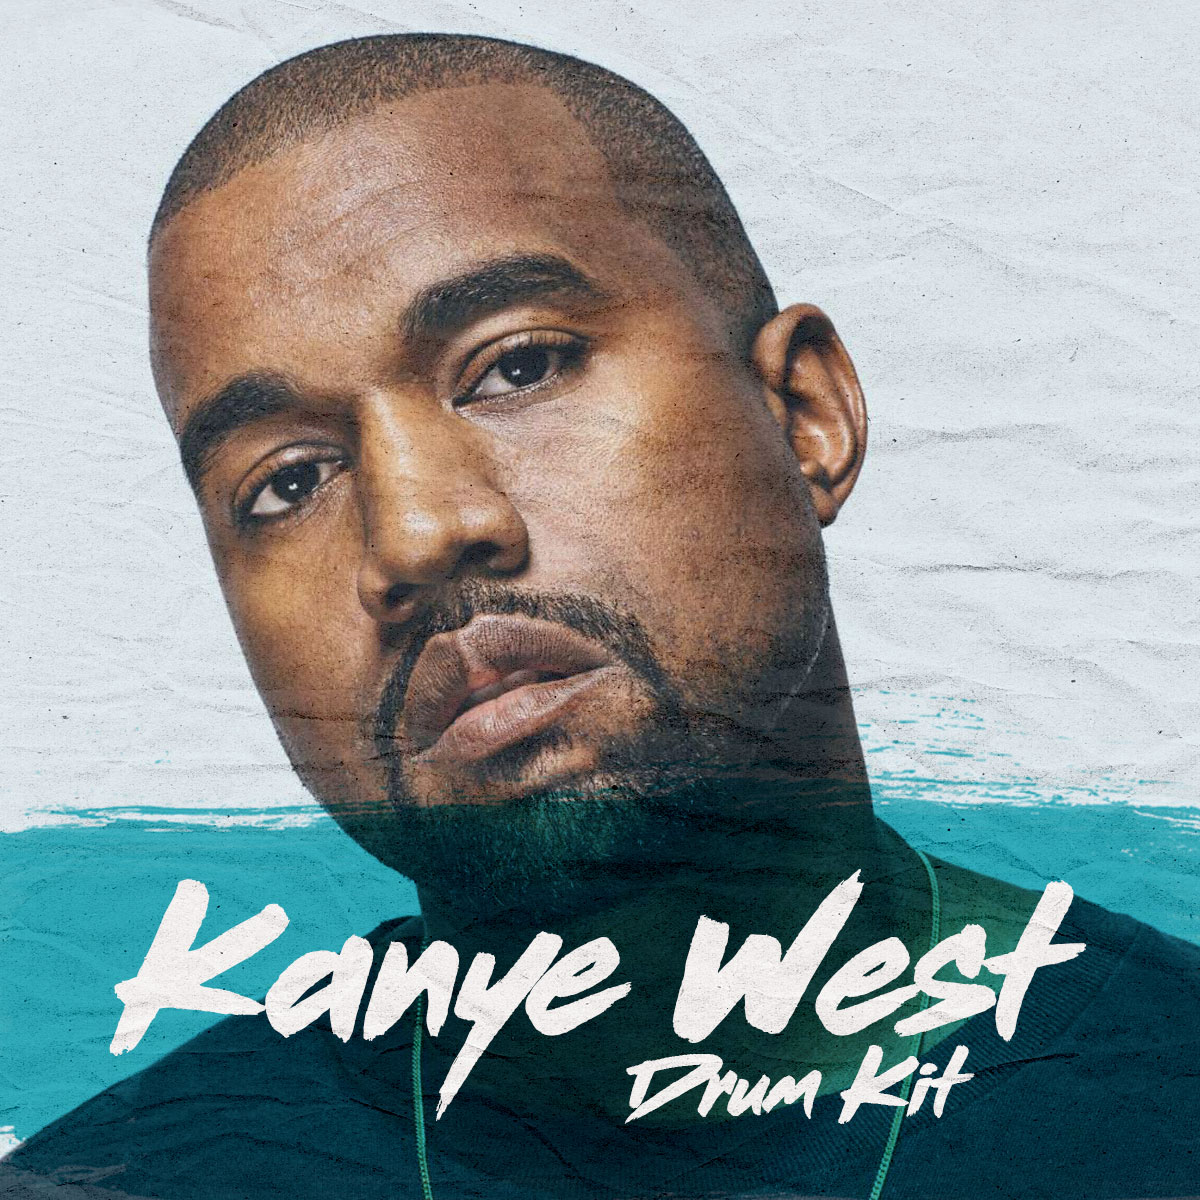 kanye-west-drum-samples